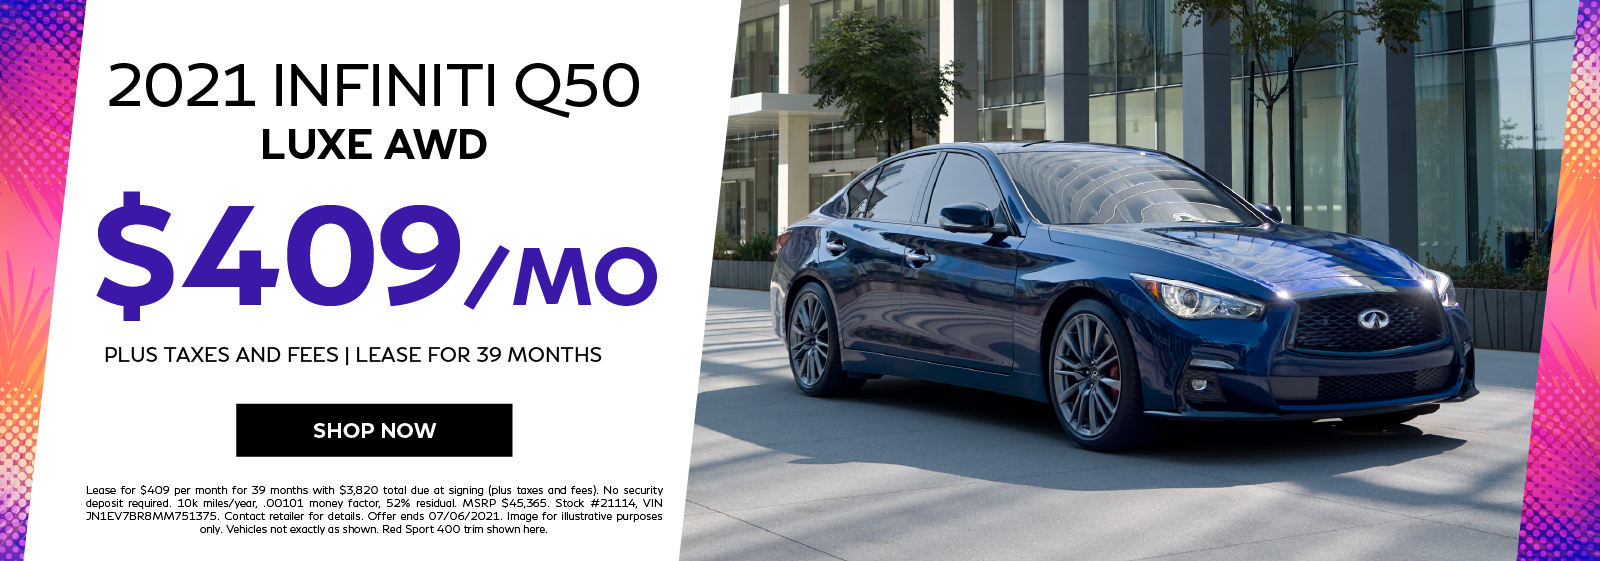 2021 INFINITI Q50 LUXE AWD Lease Offer. Click to shop now.